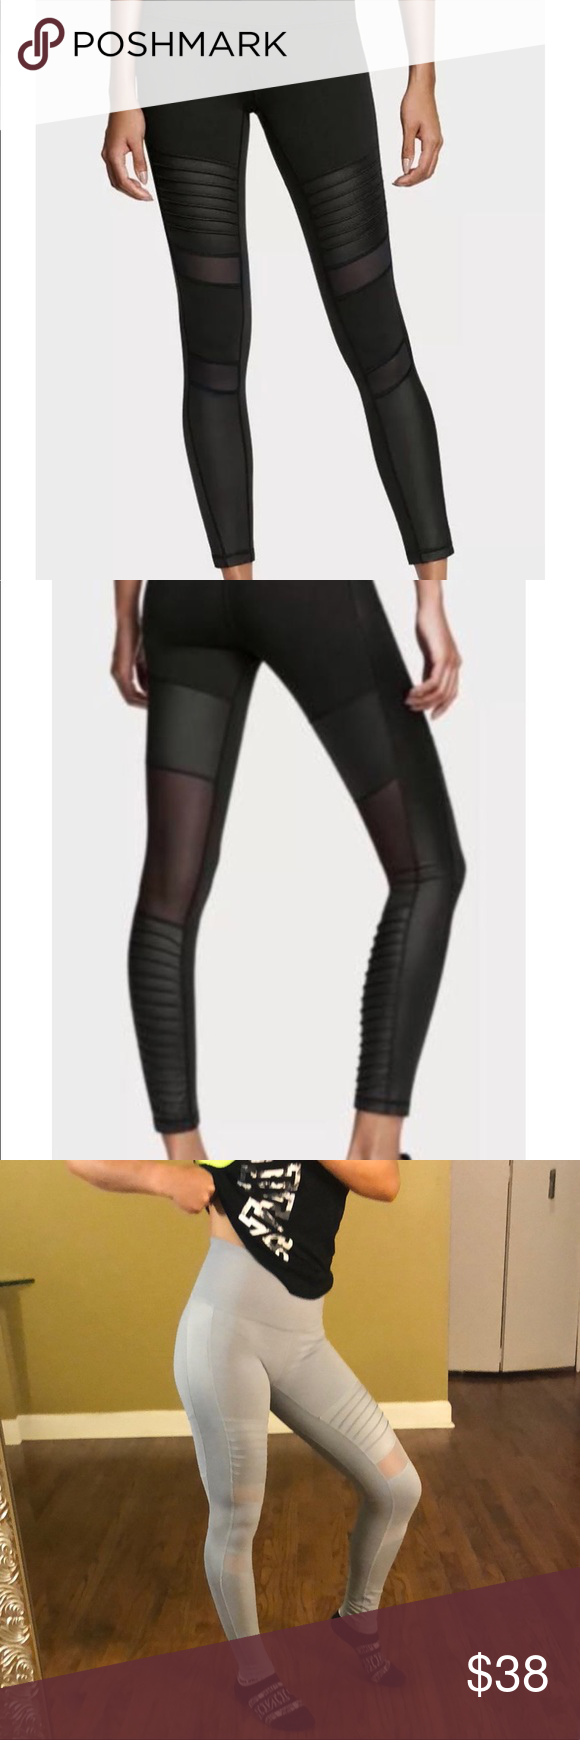 6b0ffa2ce8c23 Victoria Sport Moto Knockout Leggings These are gray, not black. Used stock  photos for